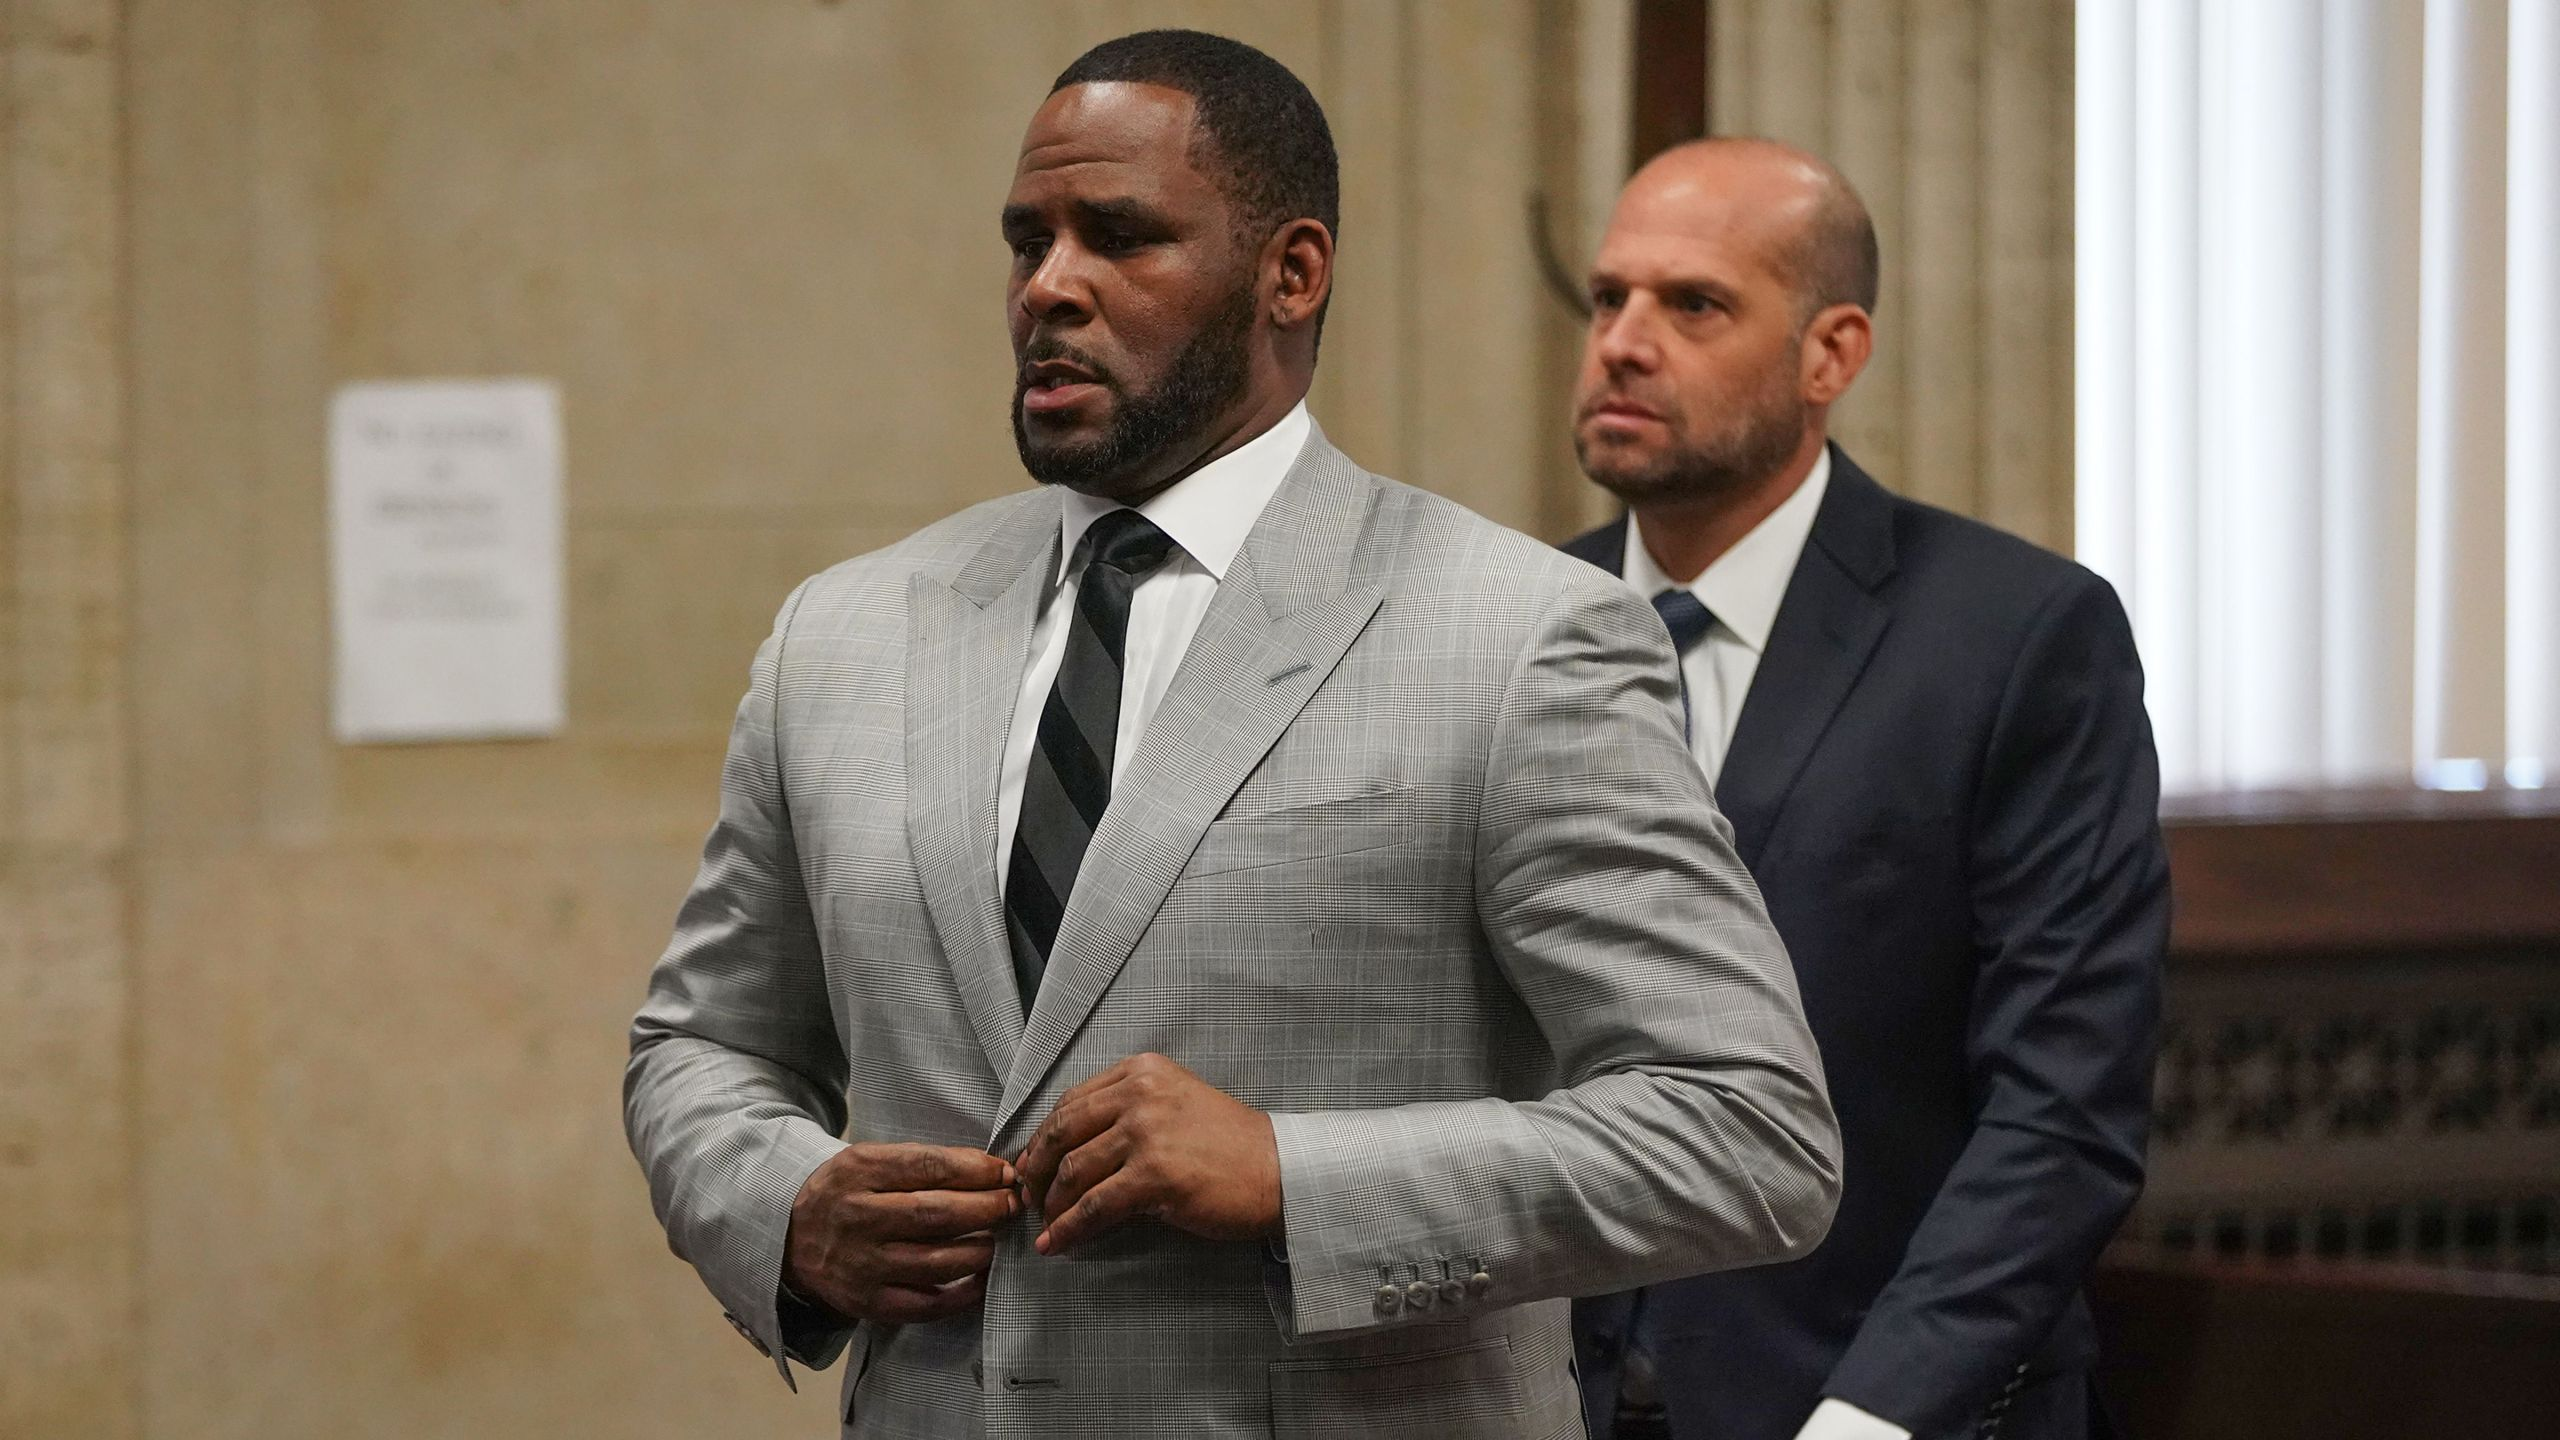 R. Kelly pleads not guilty to a new indictment in Chicago on June 6, 2019. (E. JASON WAMBSGANS/AFP via Getty Images)